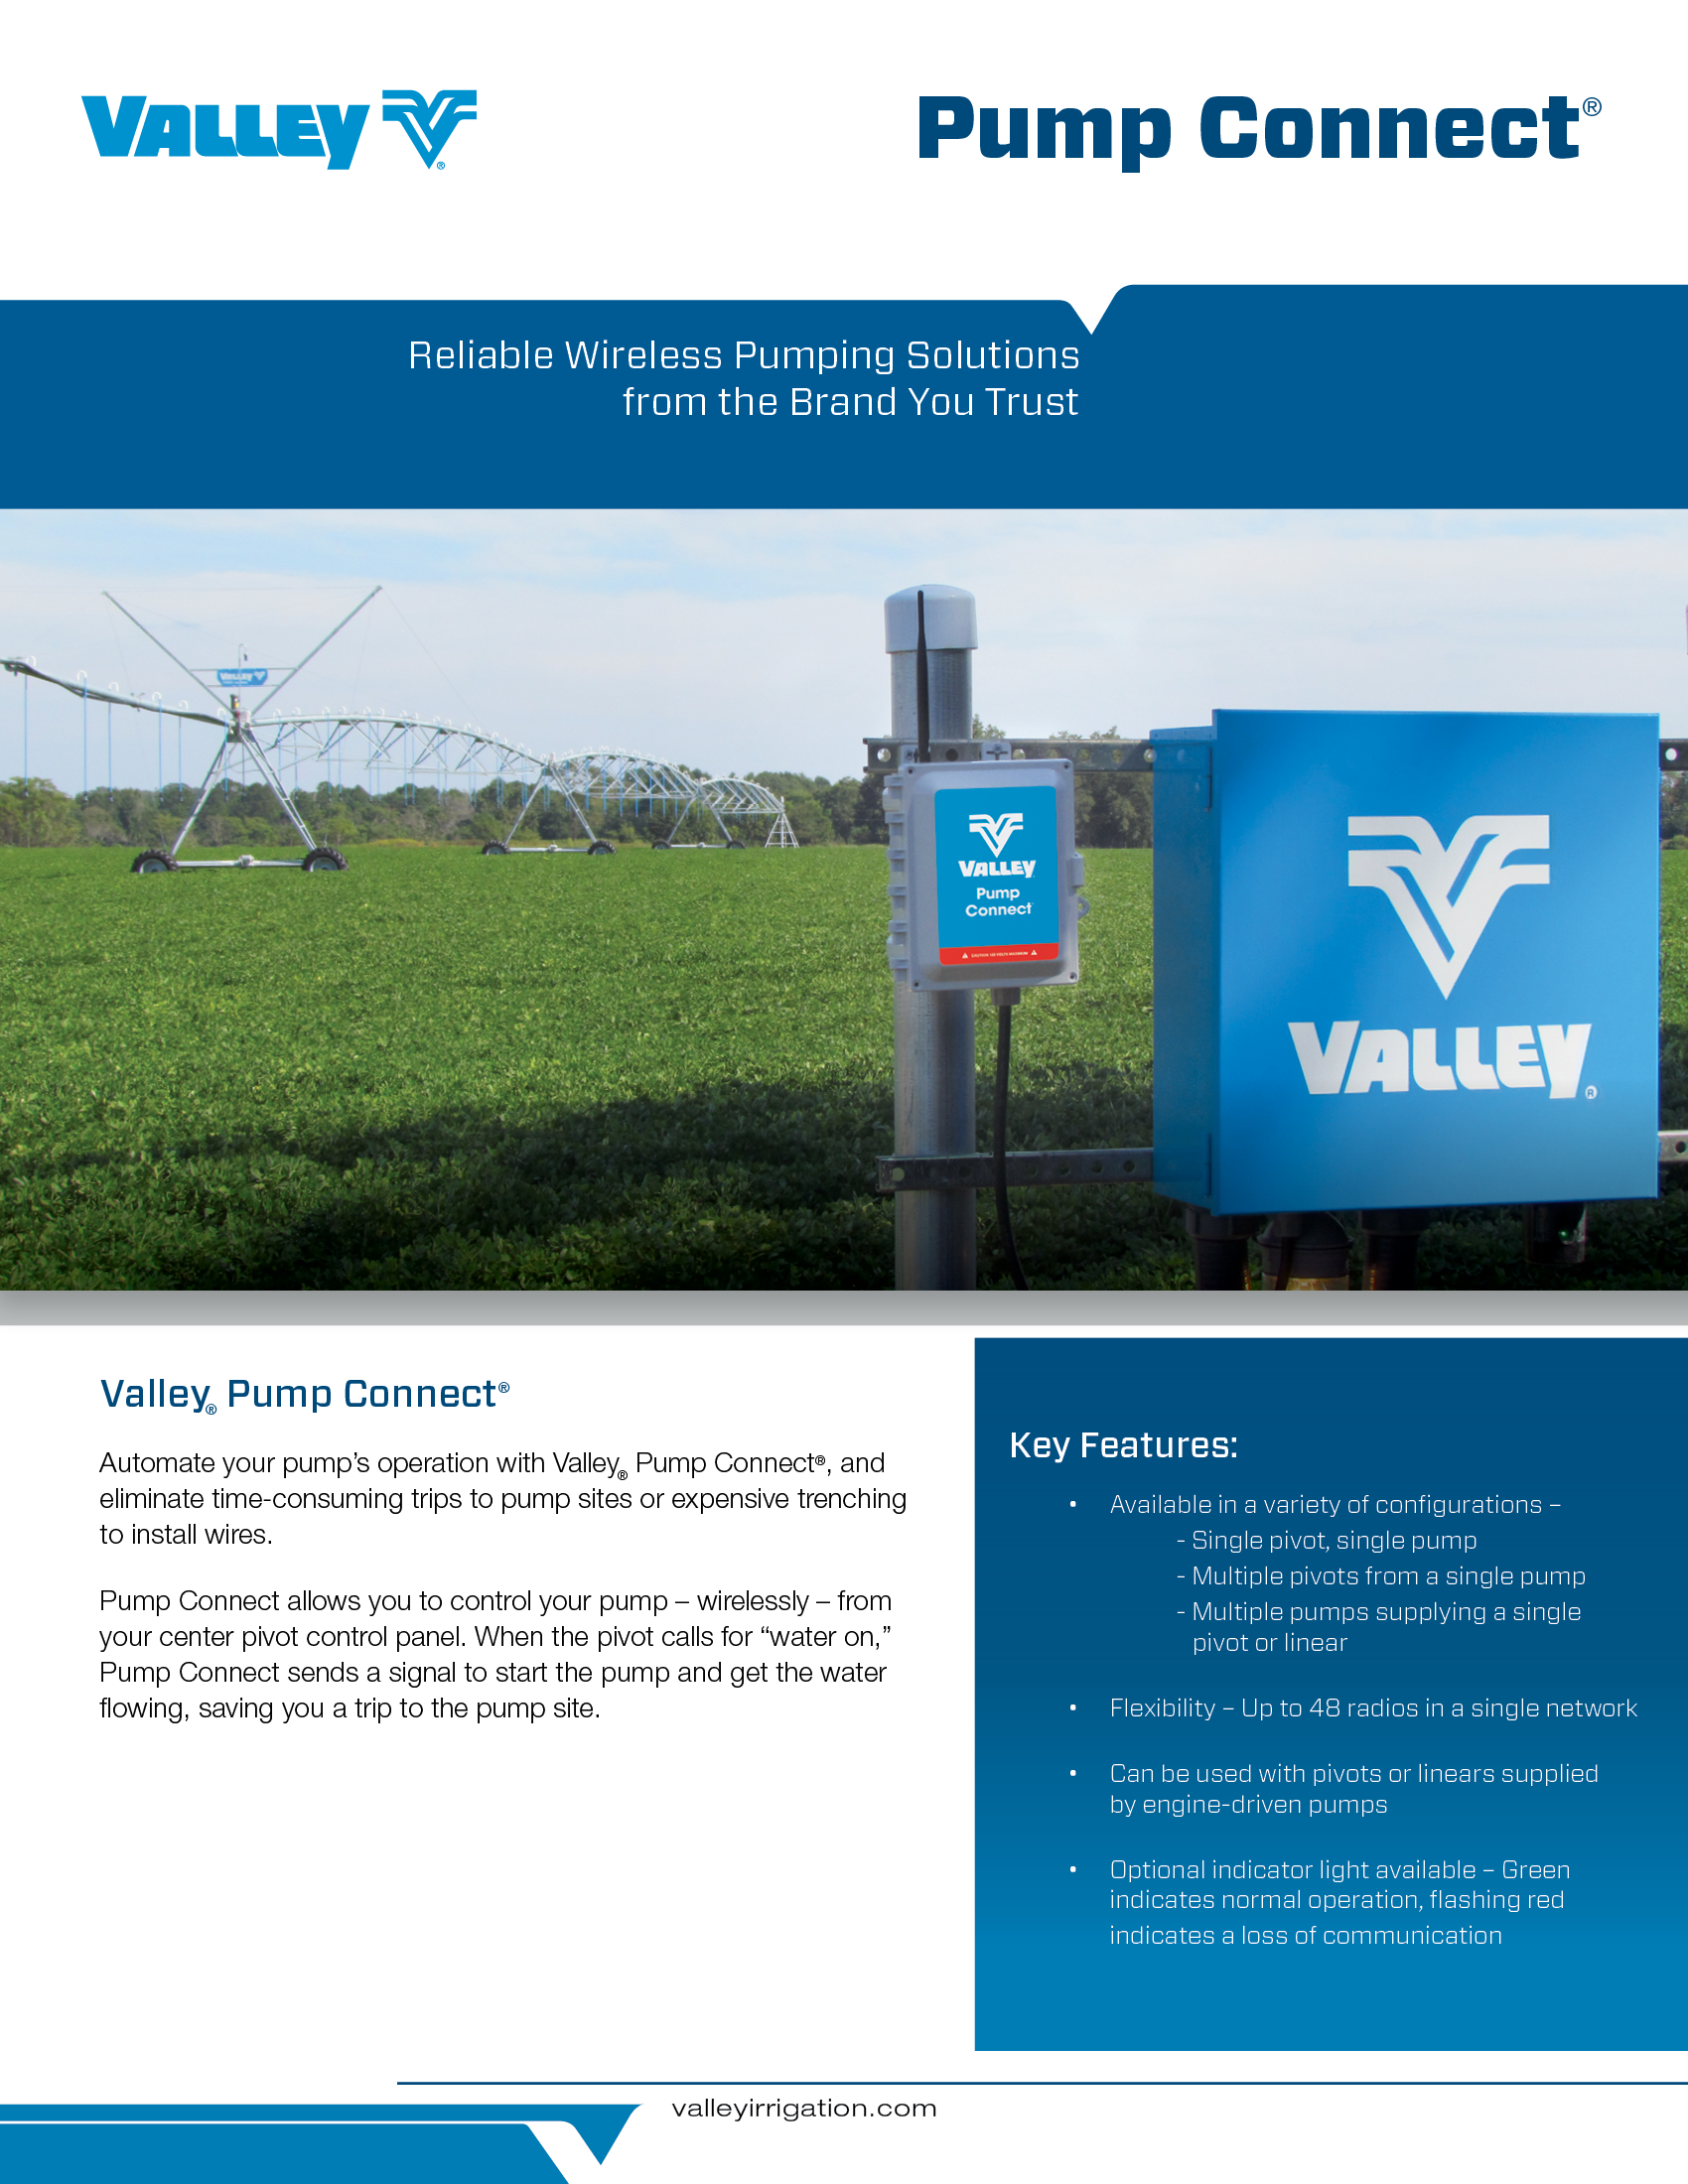 Pump Connect Solution For Precision Irrigation Valley Wiring Relay Brochure Cover